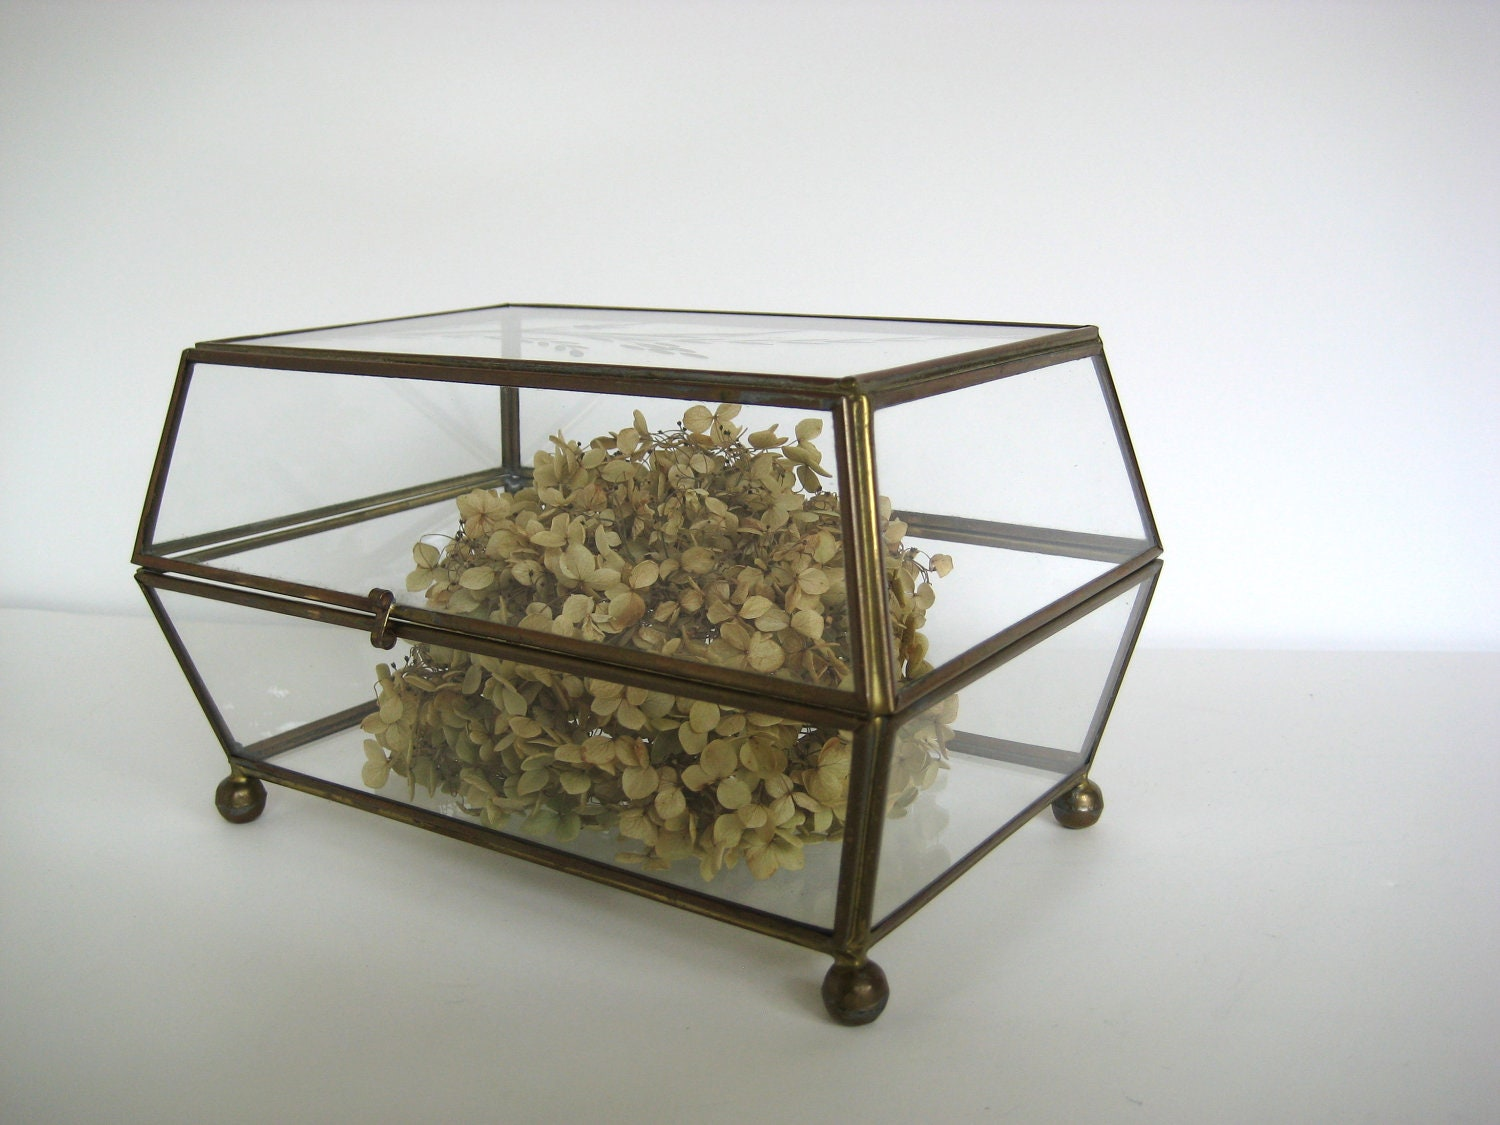 Glass display case, brass, glass box, terrarium - PatinaMarket